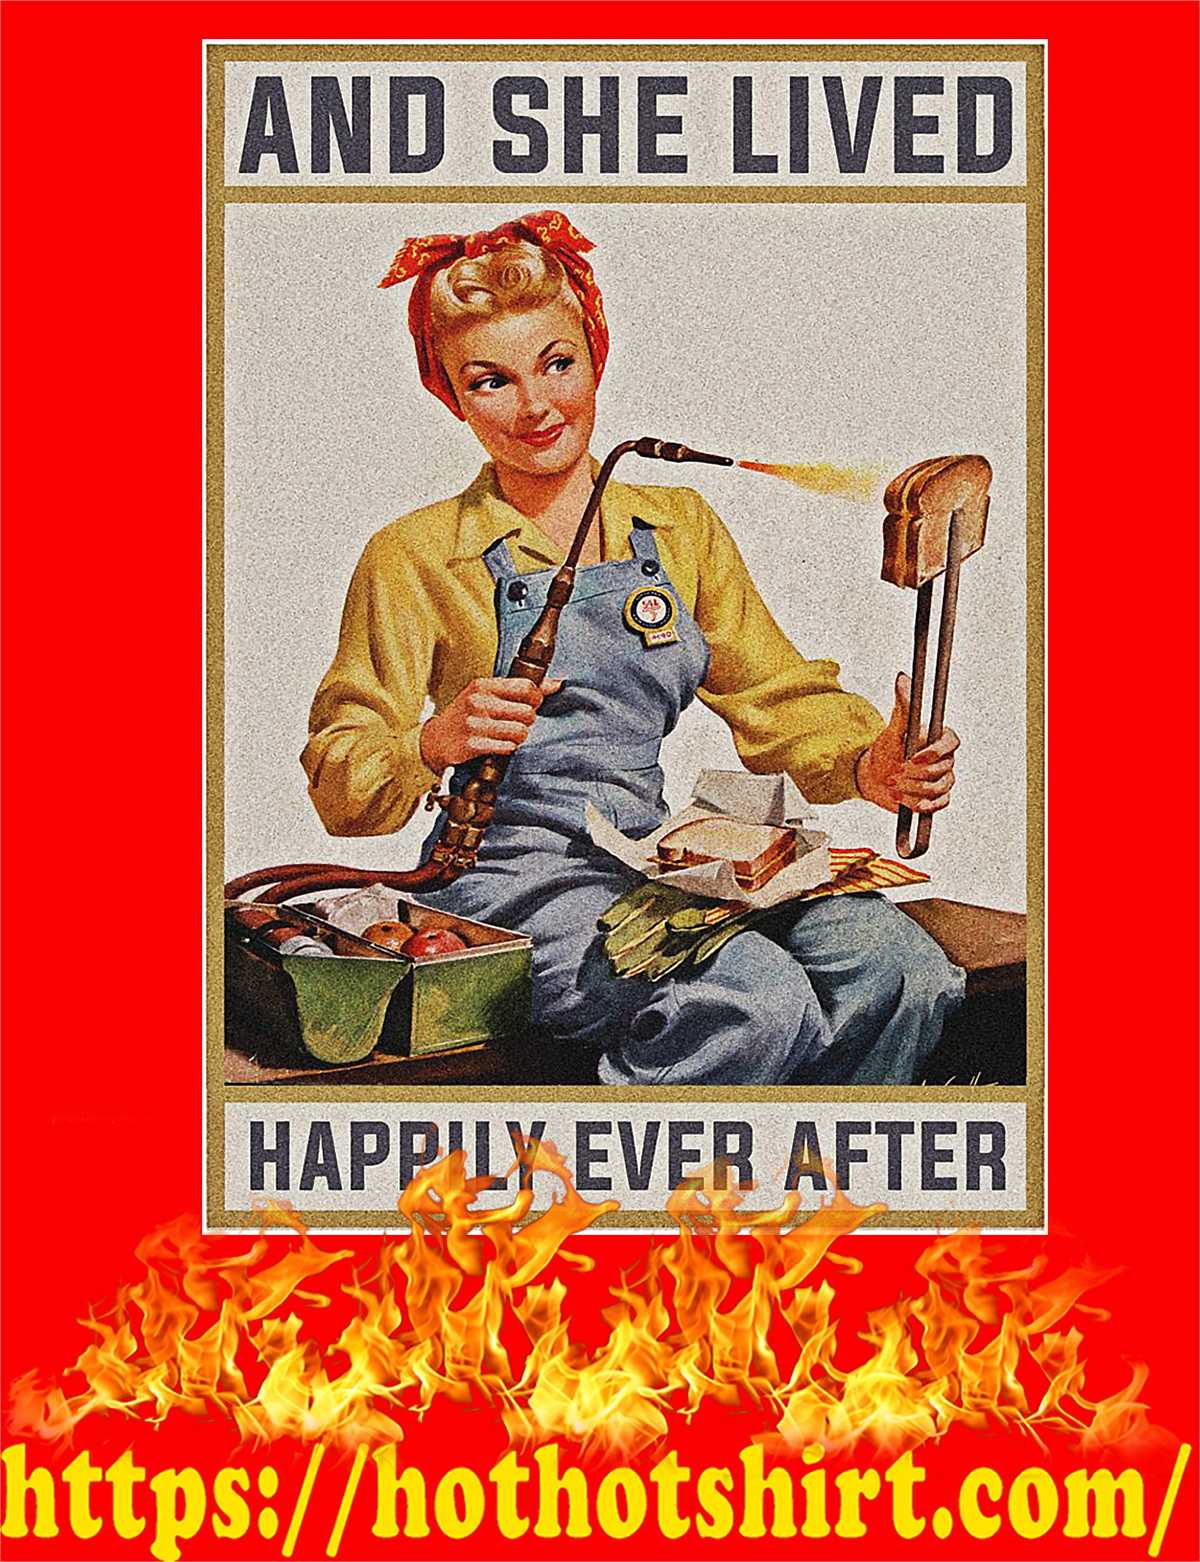 Welder woman And she lived happily ever after poster - A4